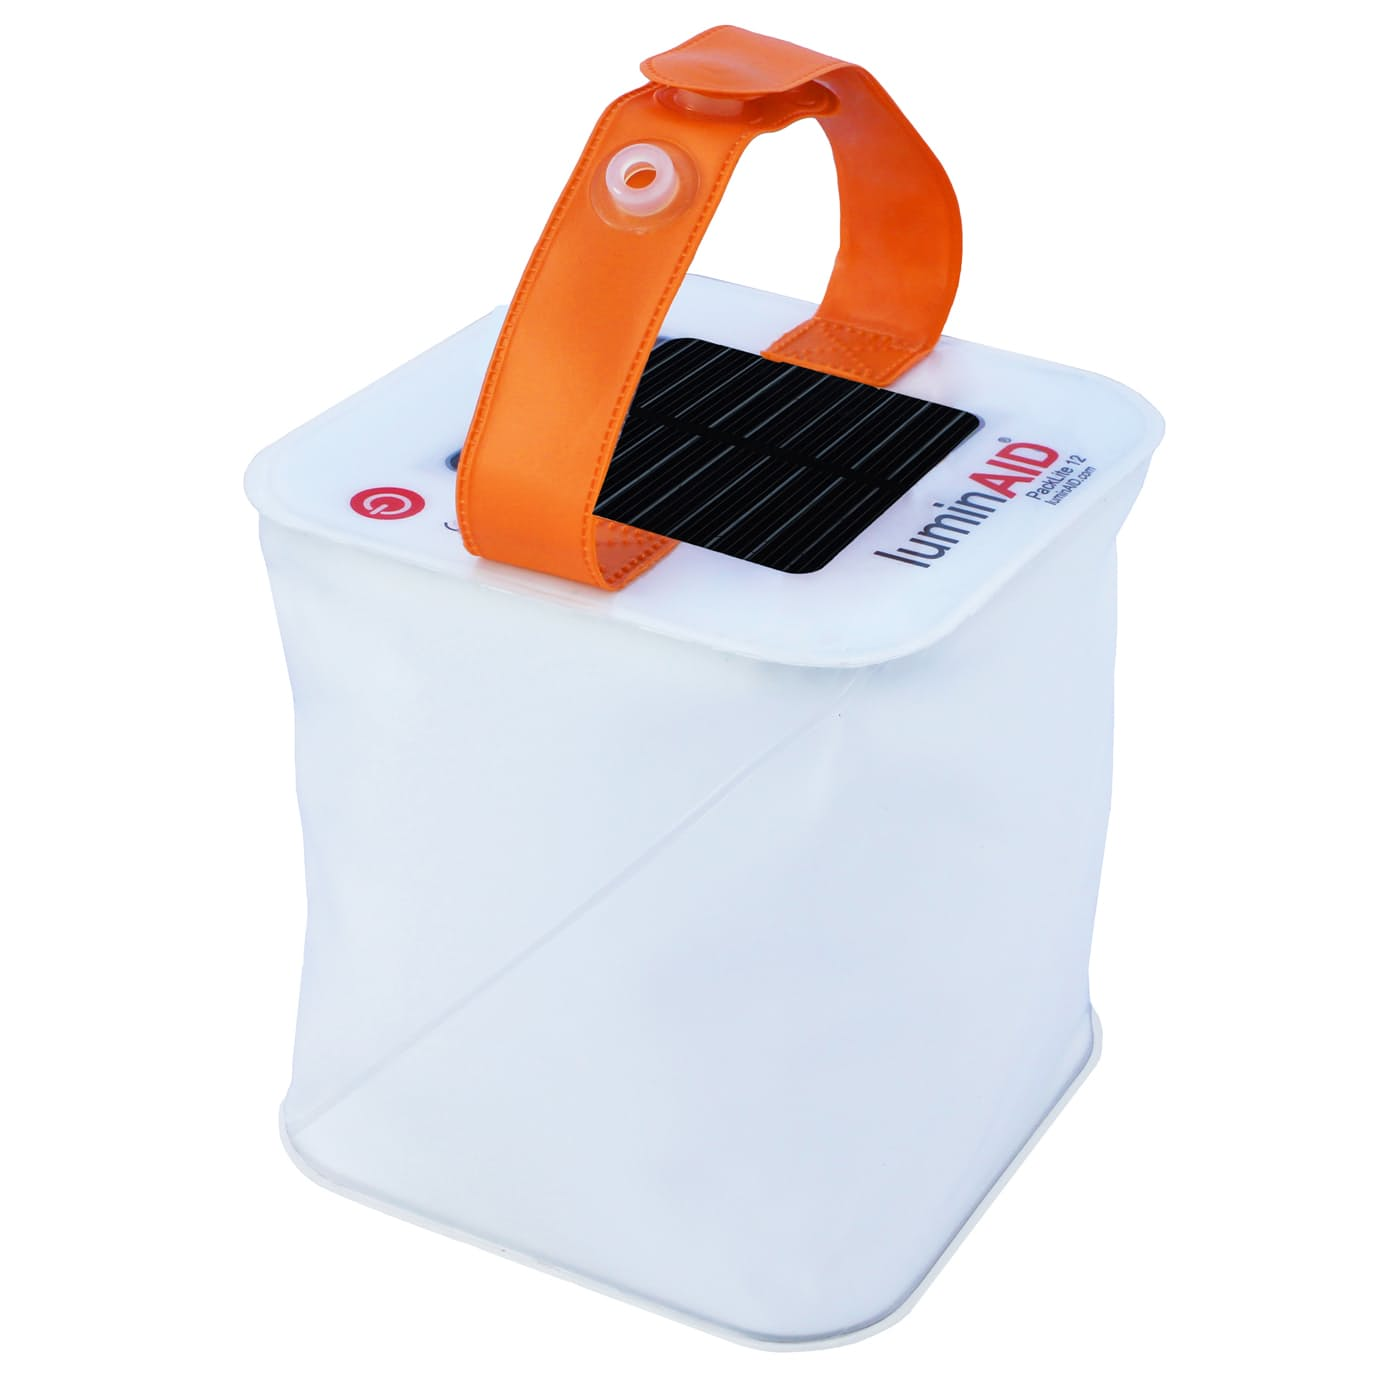 Haeshl2rfc luminaid packlite 12 0 original